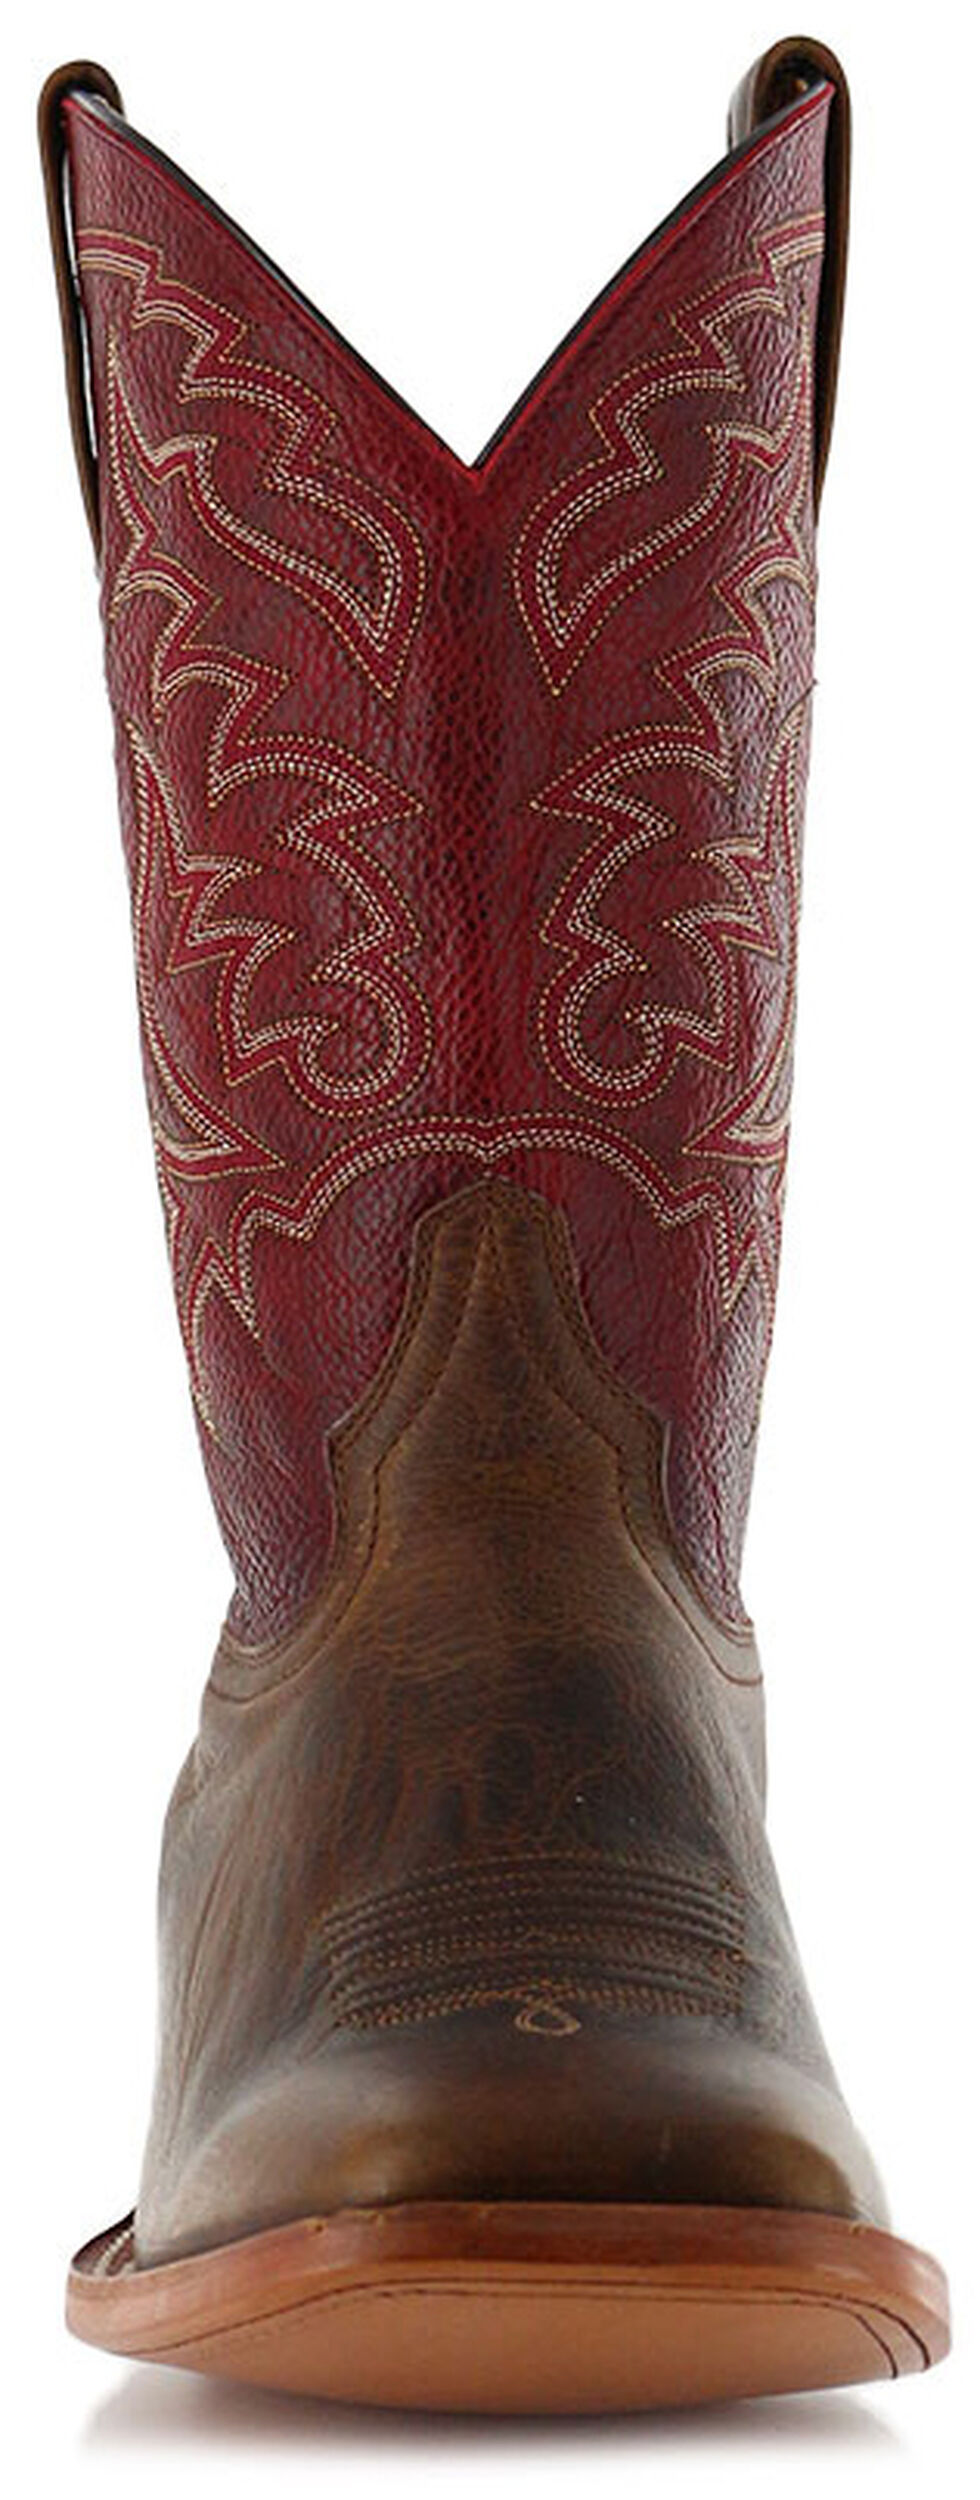 Moonshine Spirit Men's Western Boots - Square Toe, Brown, hi-res